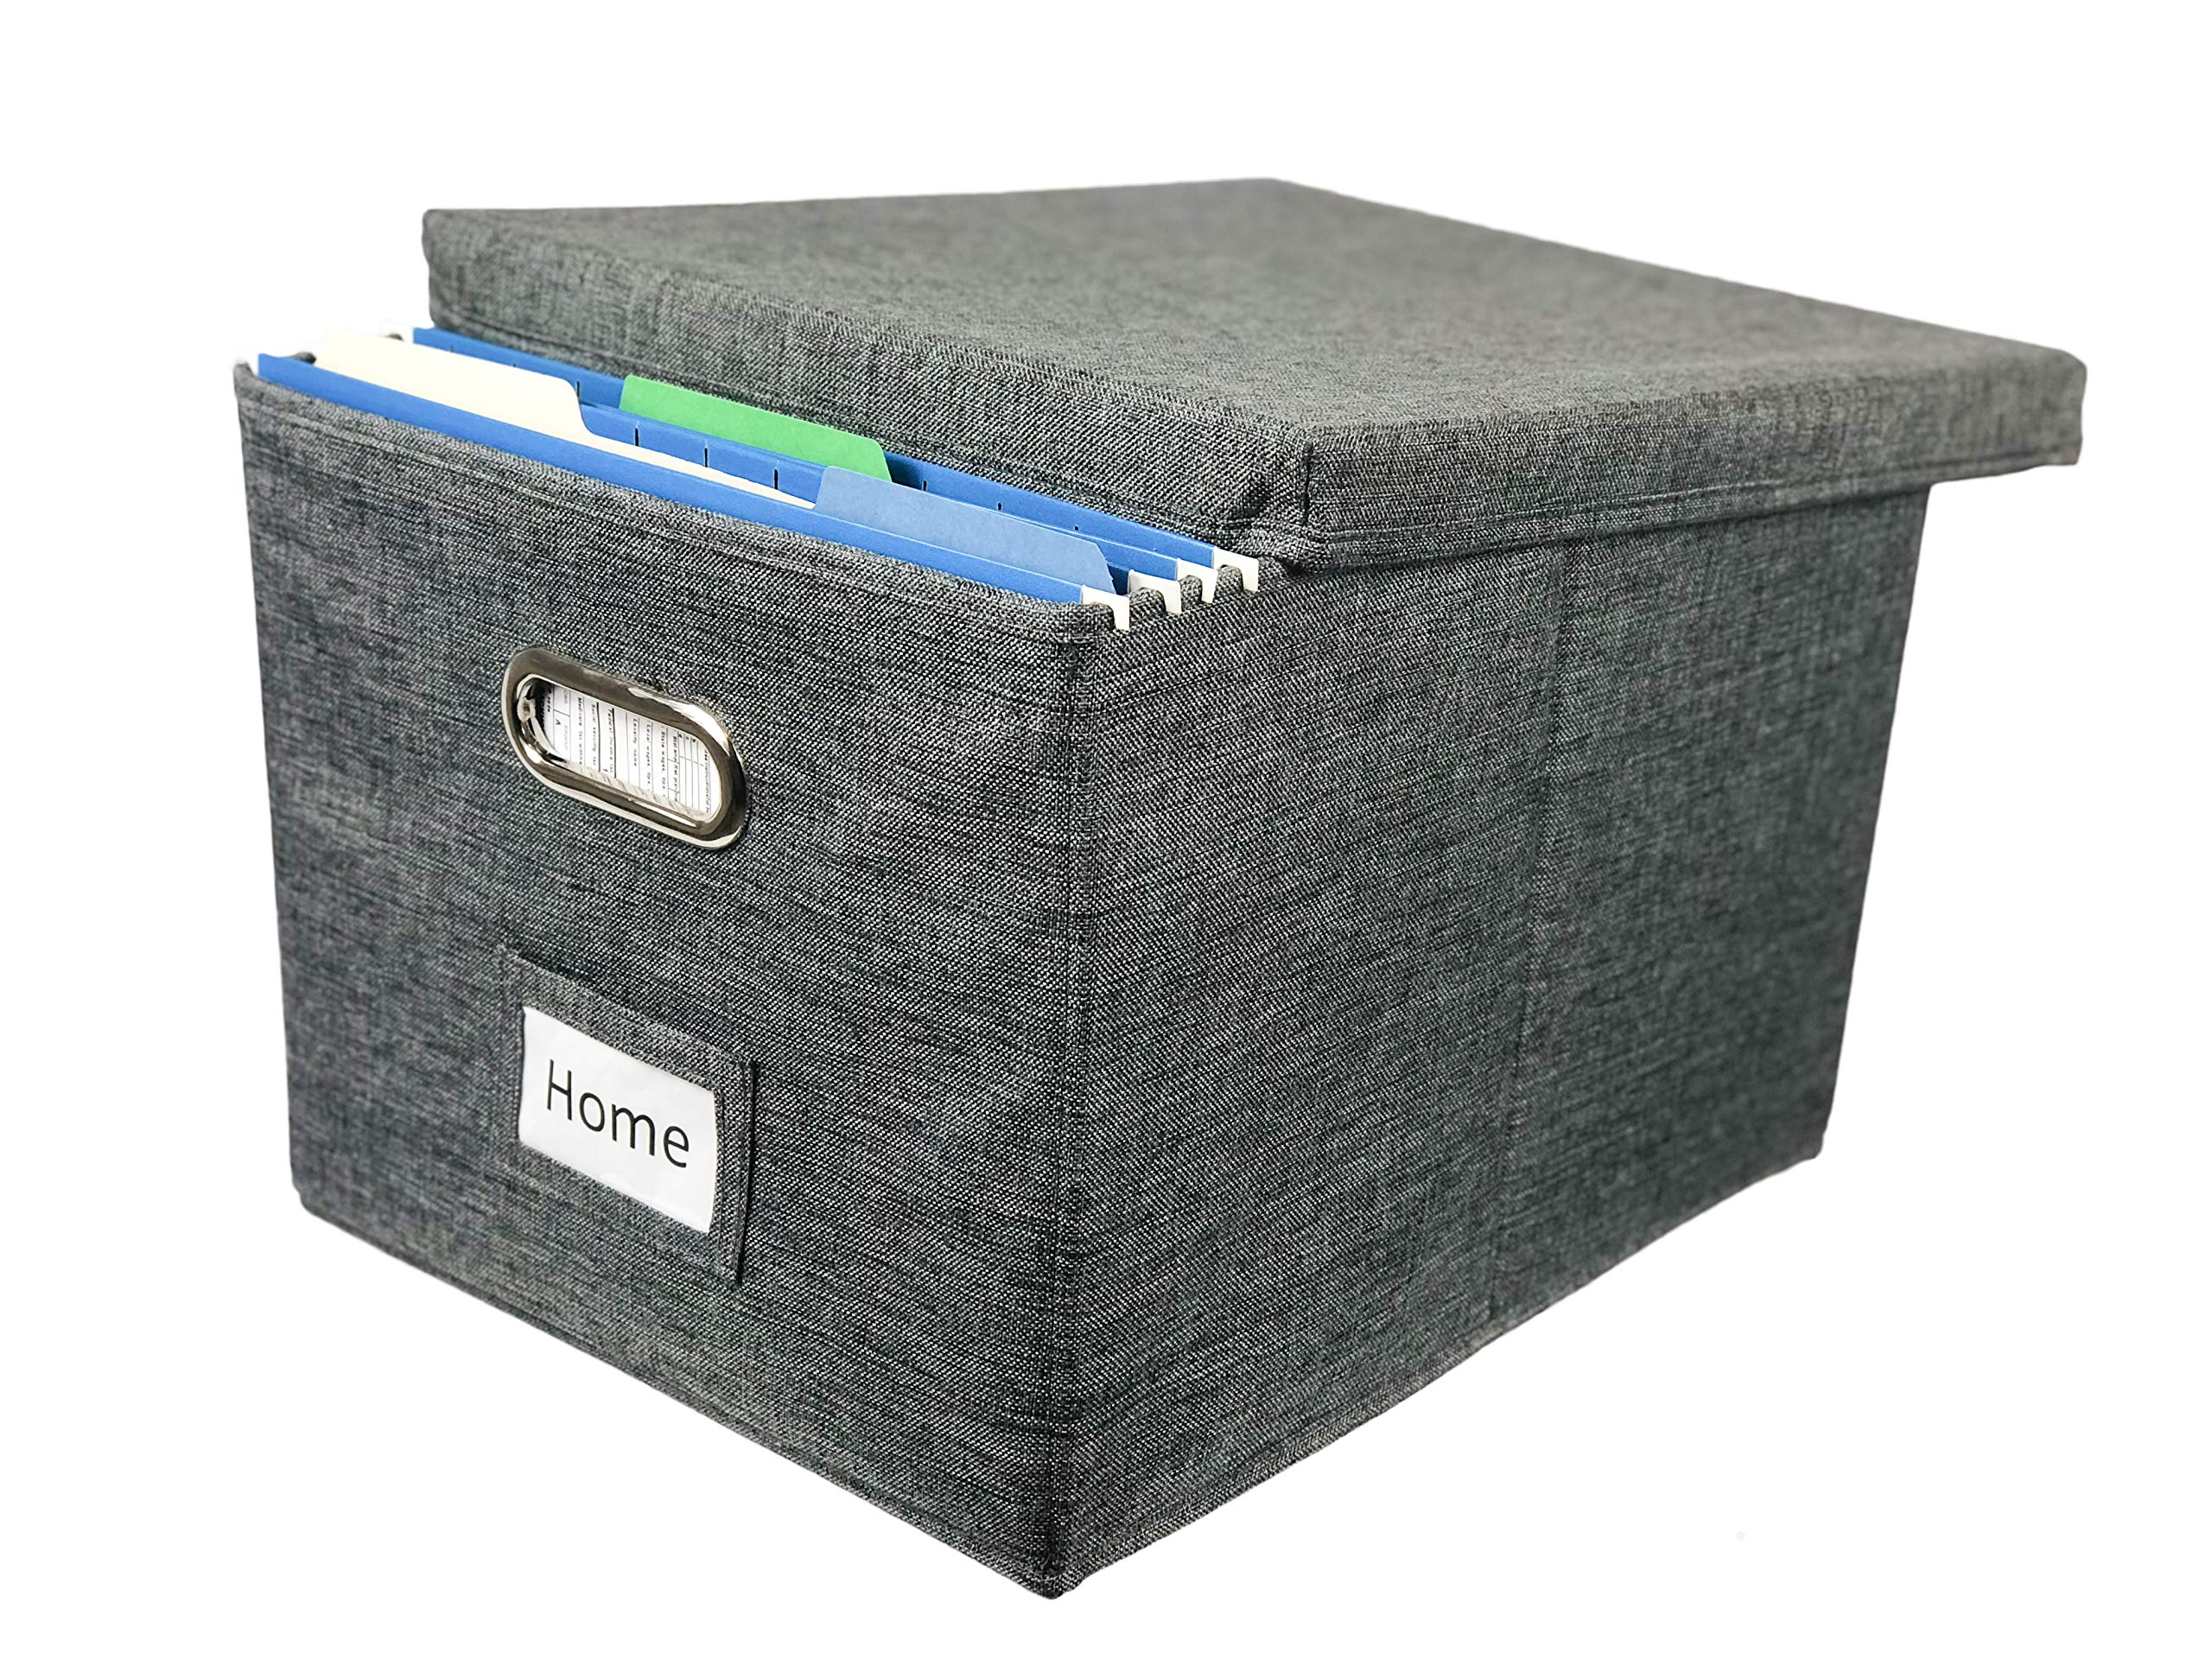 Viluh Collapsible File Box Storage Organizer | Decorative Linen Filing & Office Bin | Letter/Legal | Hanging Folders | Important Document Container | Charcoal Gray |